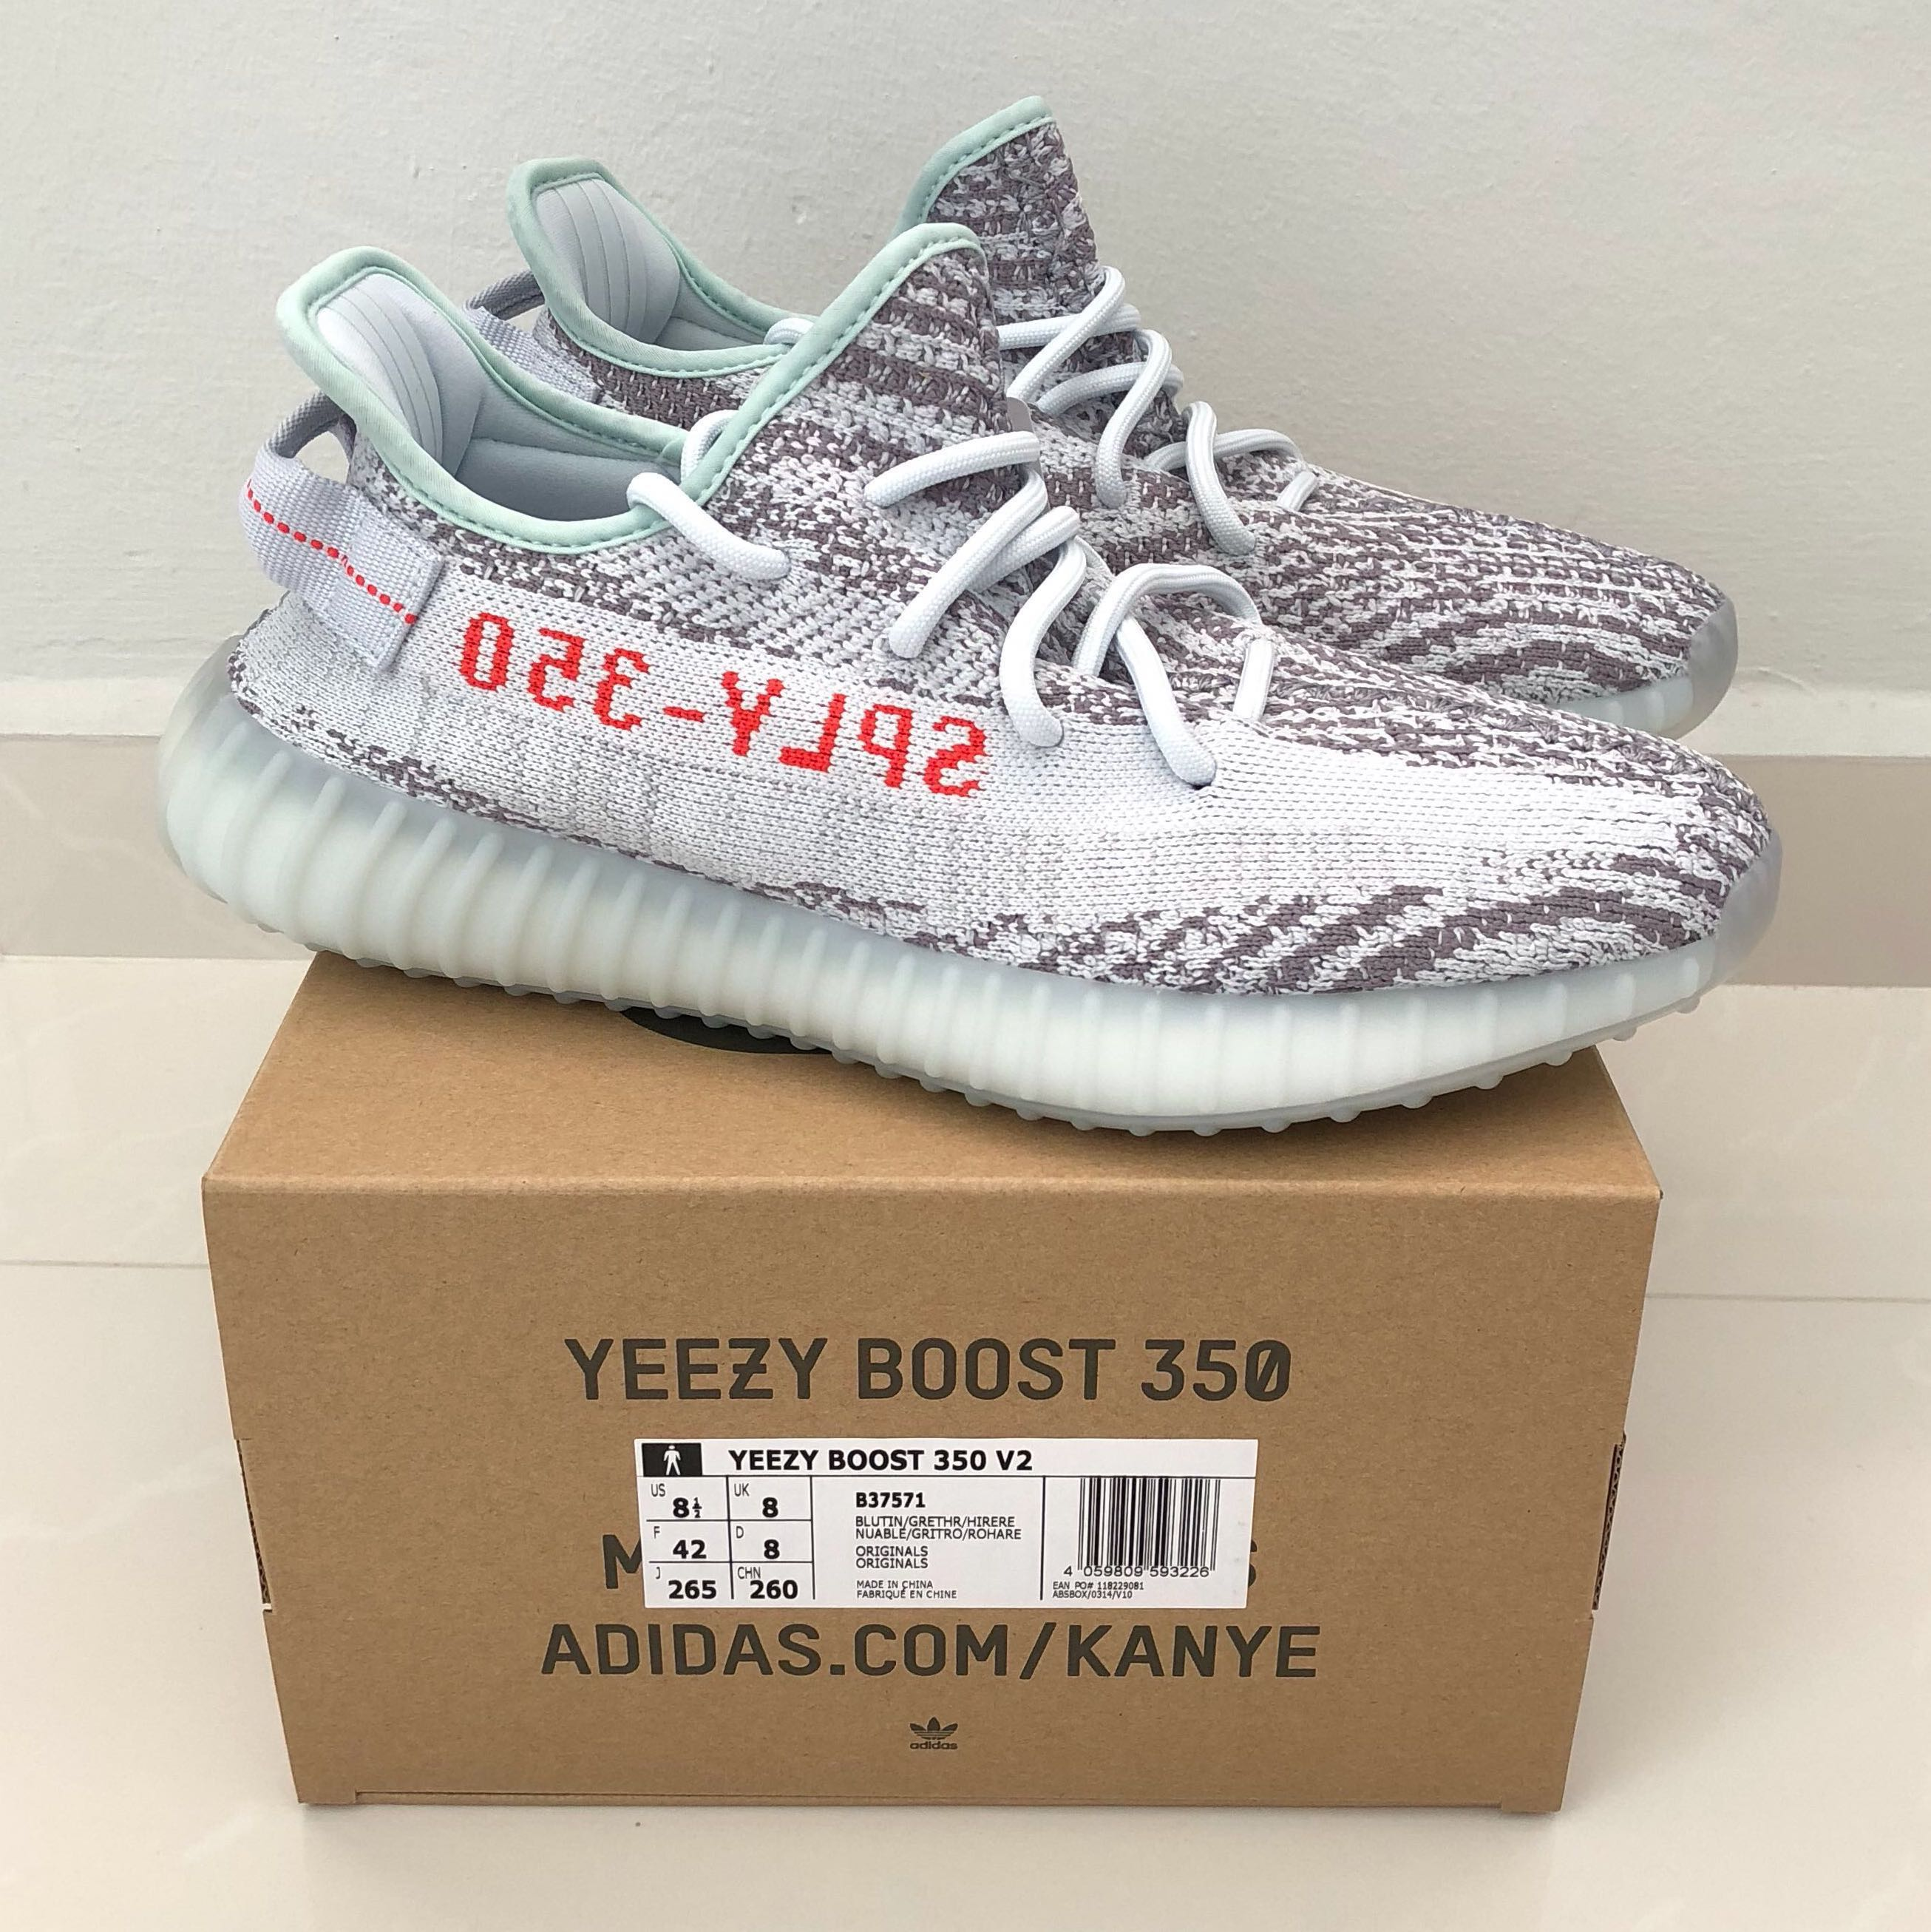 5f104e0fba9 Adidas Yeezy Boost 350 V2  Blue Tint